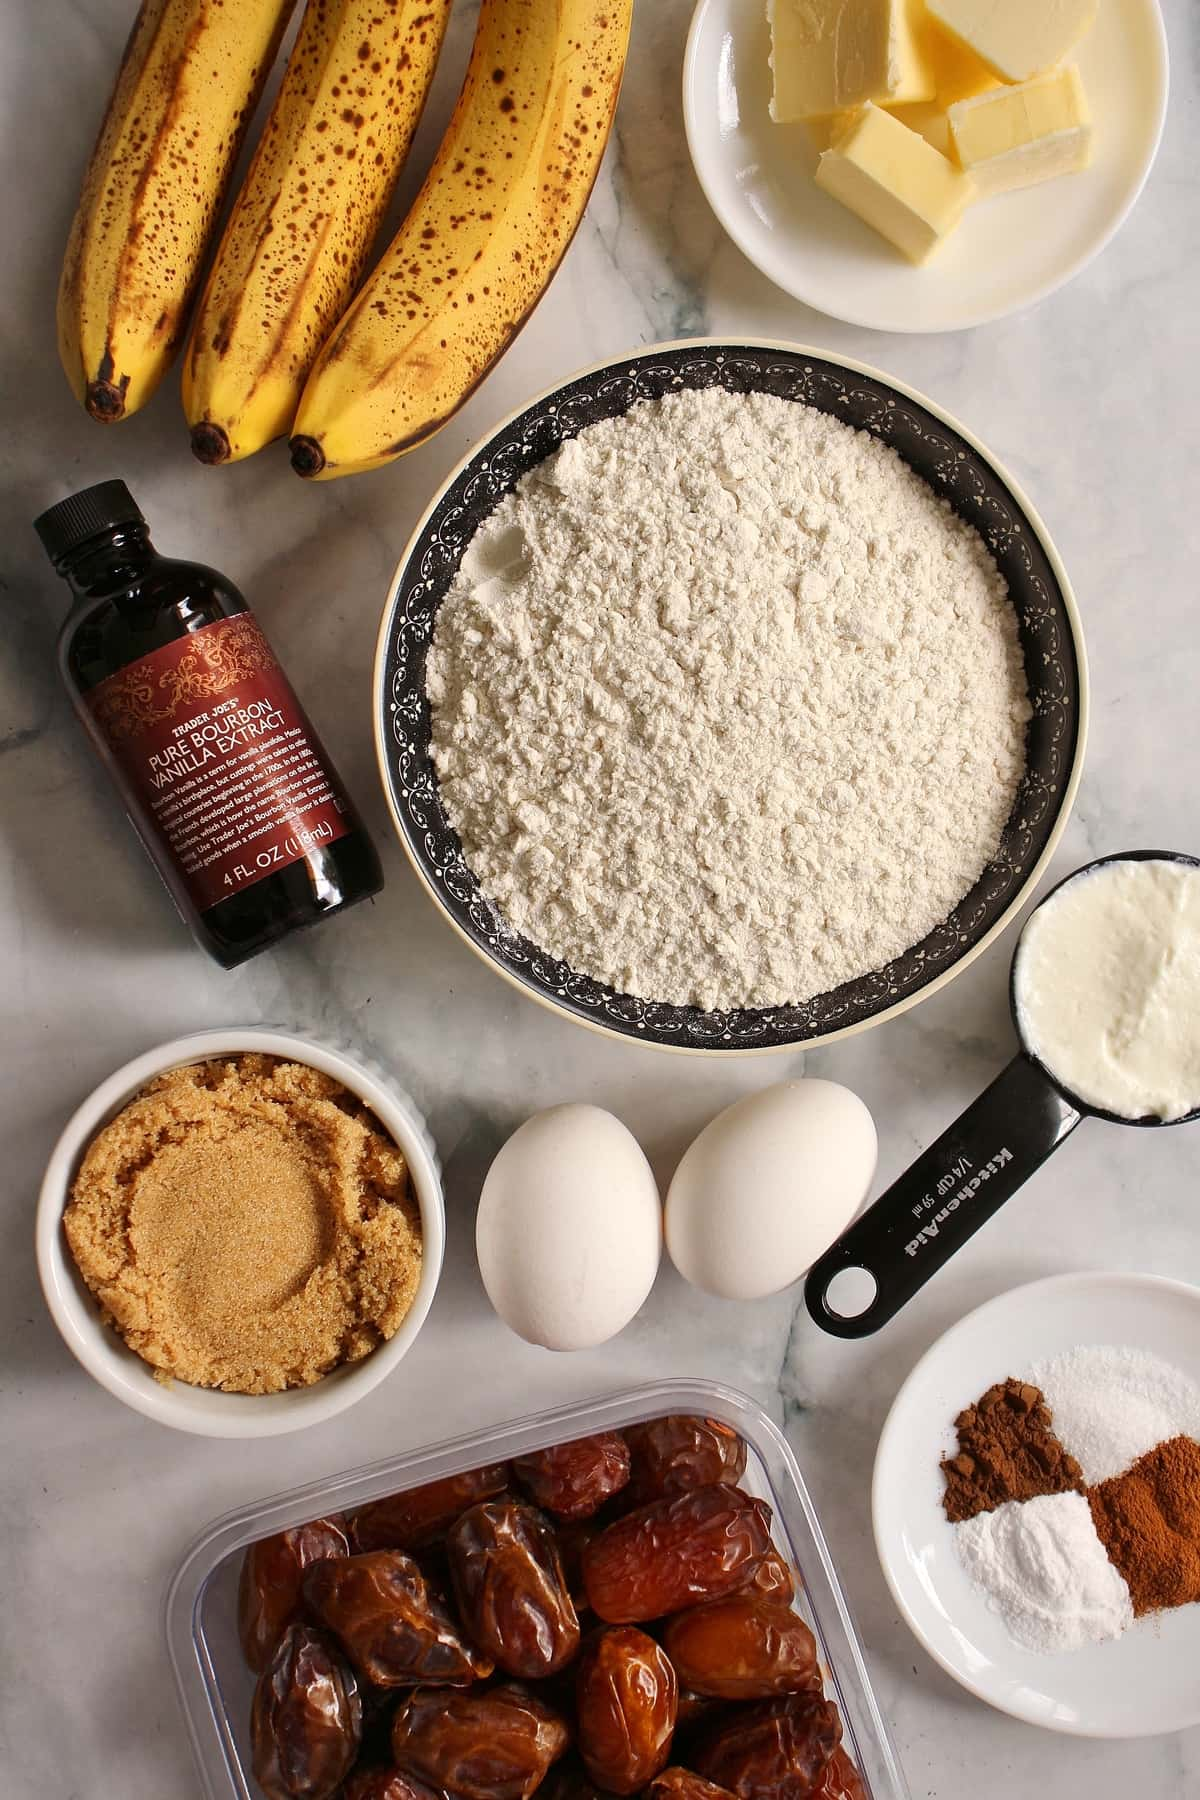 Bananas, a bowl of flour, brown sugar, eggs, dates, and a bottle of vanilla extract.